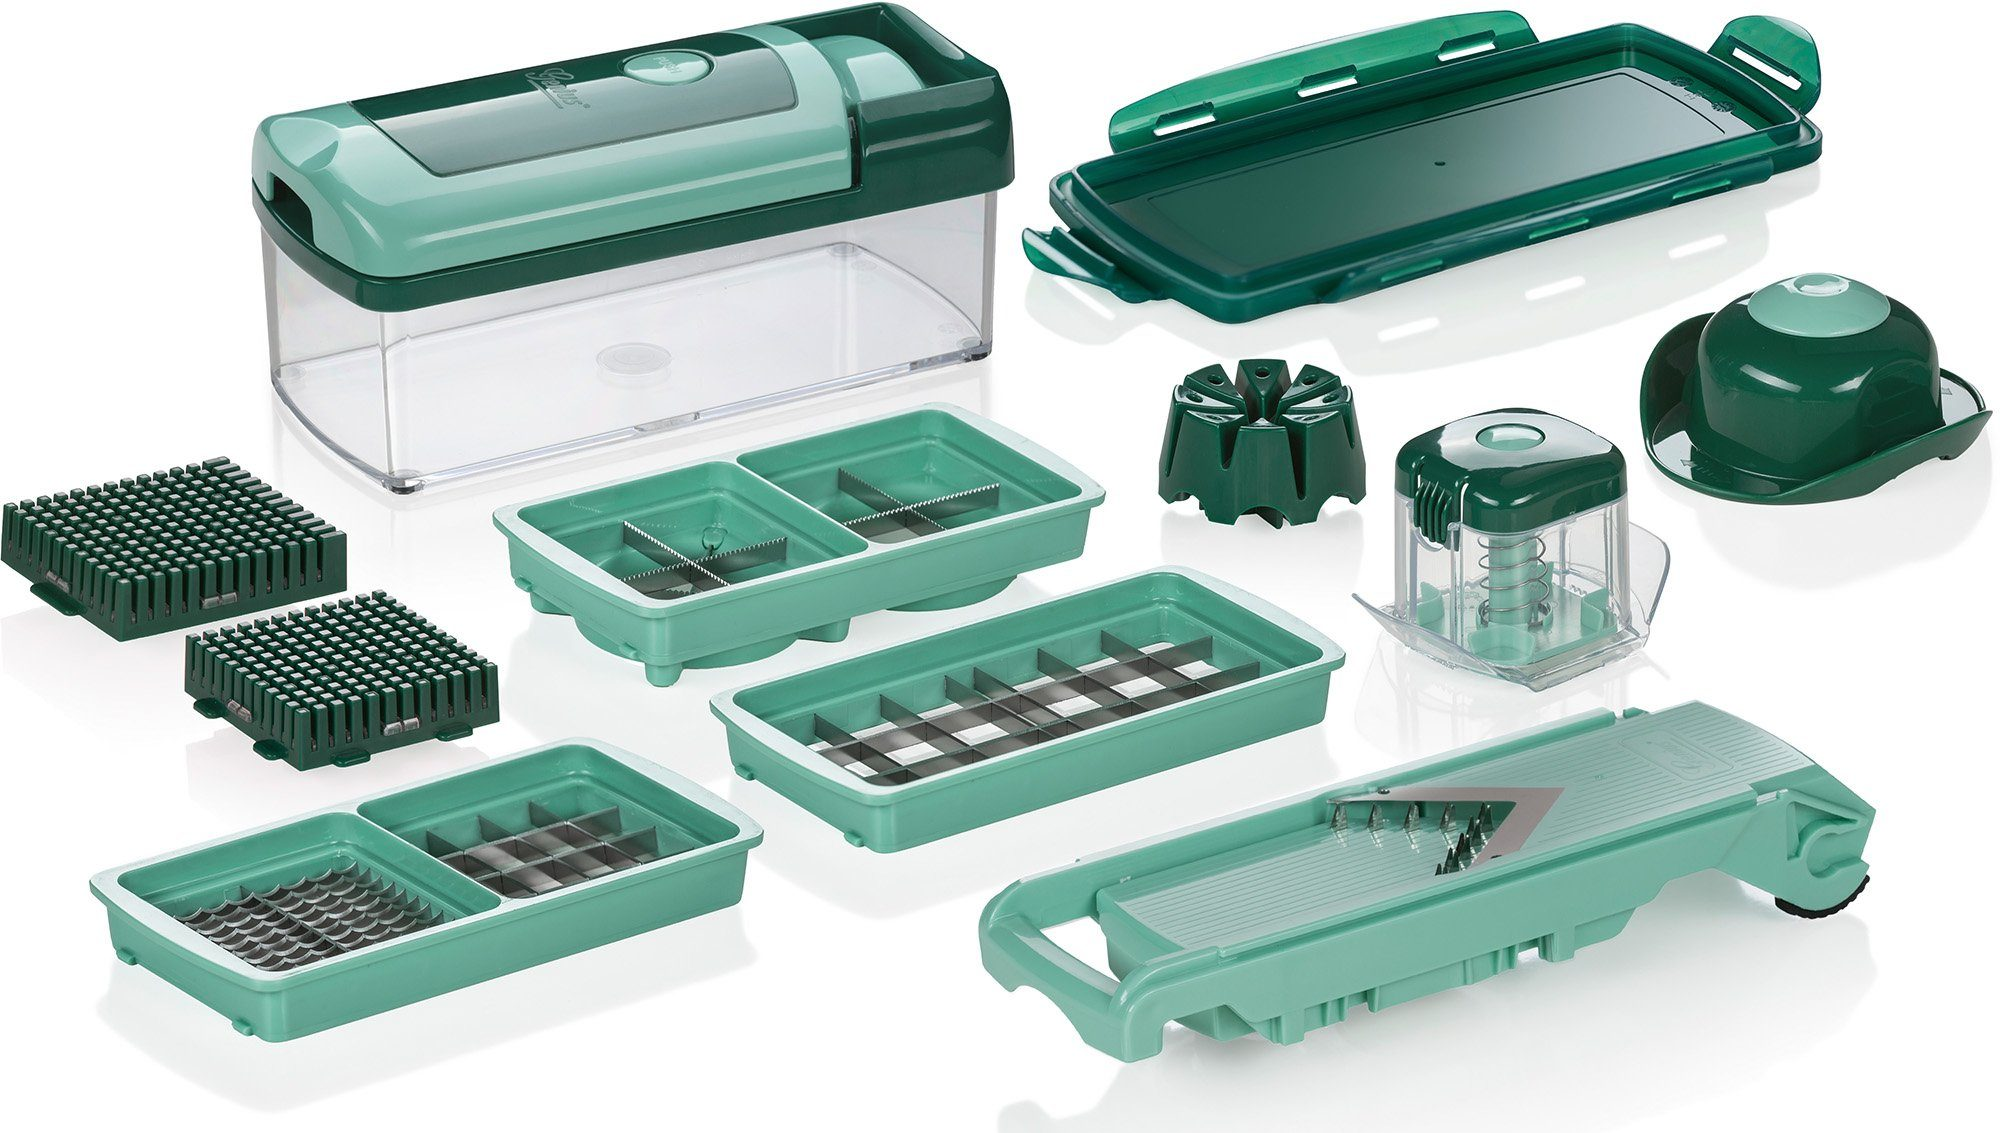 Genius® Nicer Dicer Fusion Smart (13-tlg.), 1250 ml, 24 x 11,6 x 7,5 cm